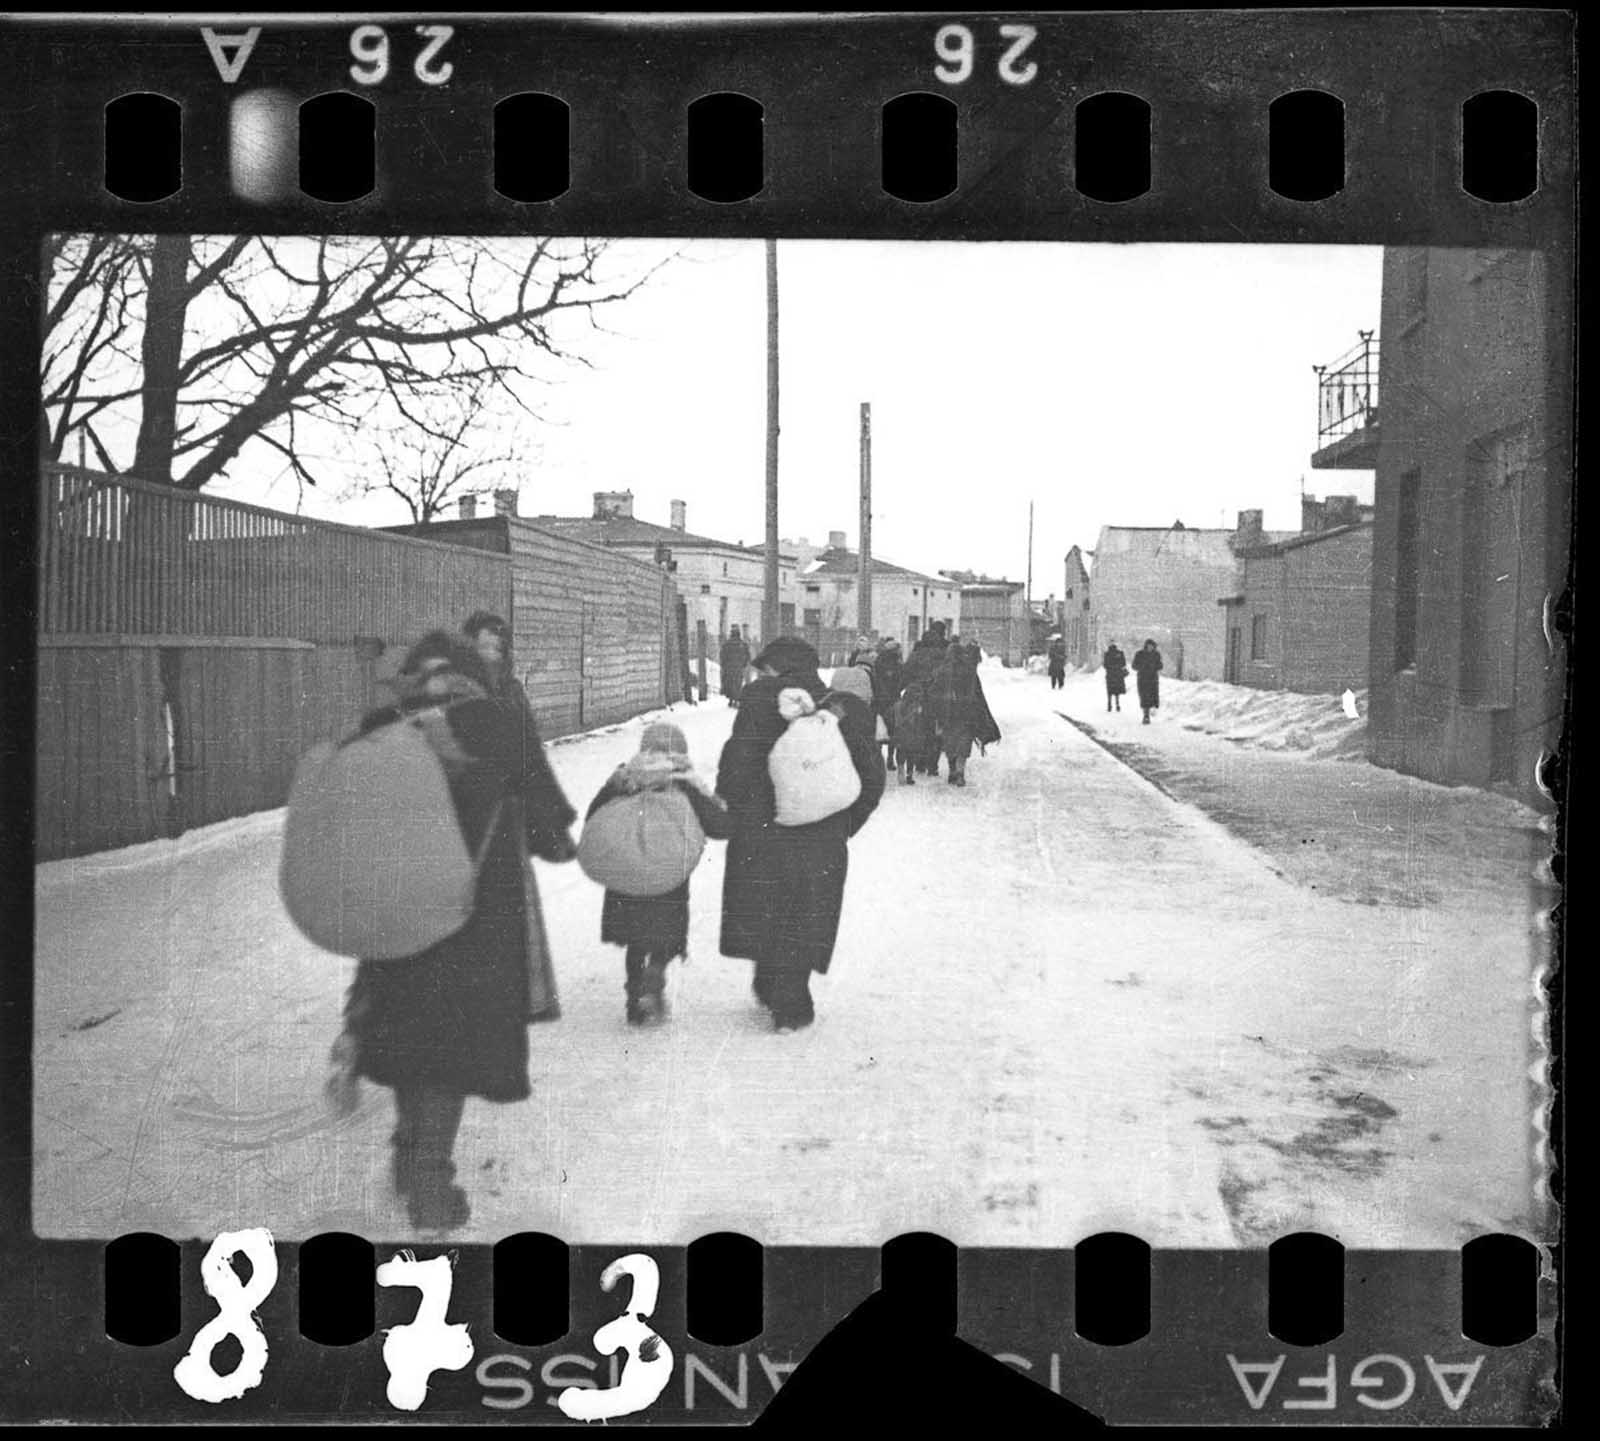 Deportation in winter.